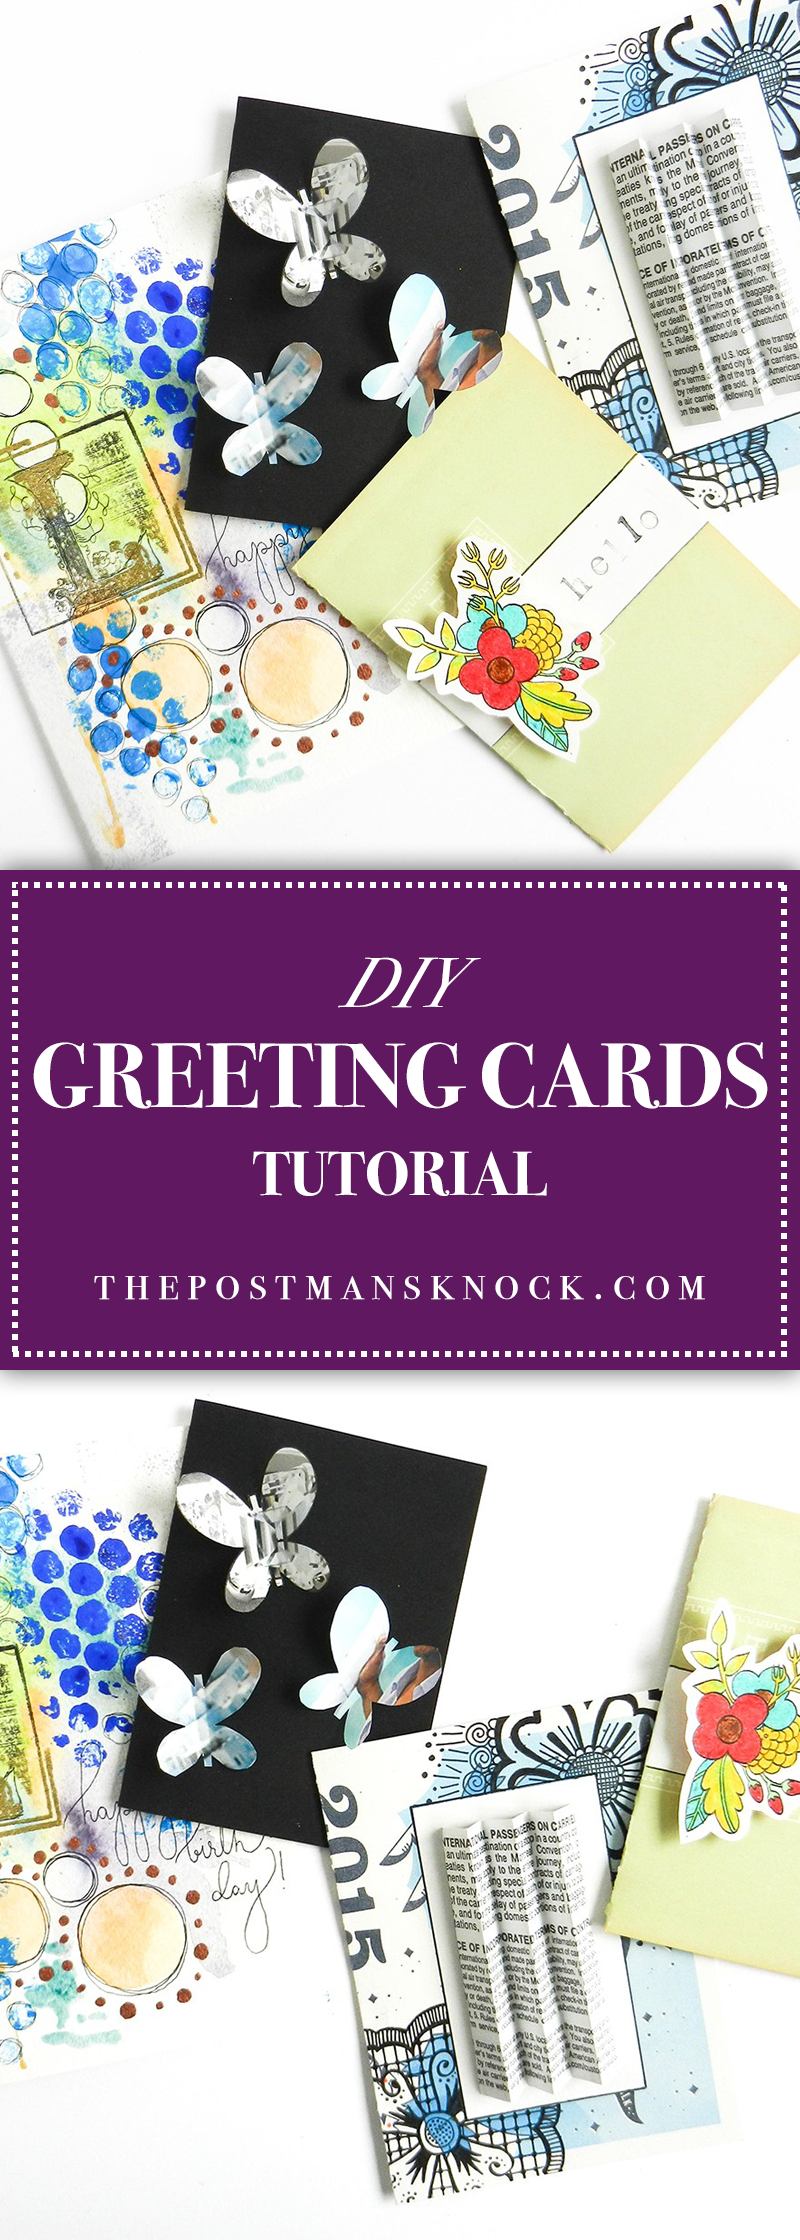 Diy greeting cards tutorial the postmans knock it dawned on me the other day that i dont write about cards a lot with the exception of the most recent tpk blog post i mostly focus on envelopes kristyandbryce Choice Image